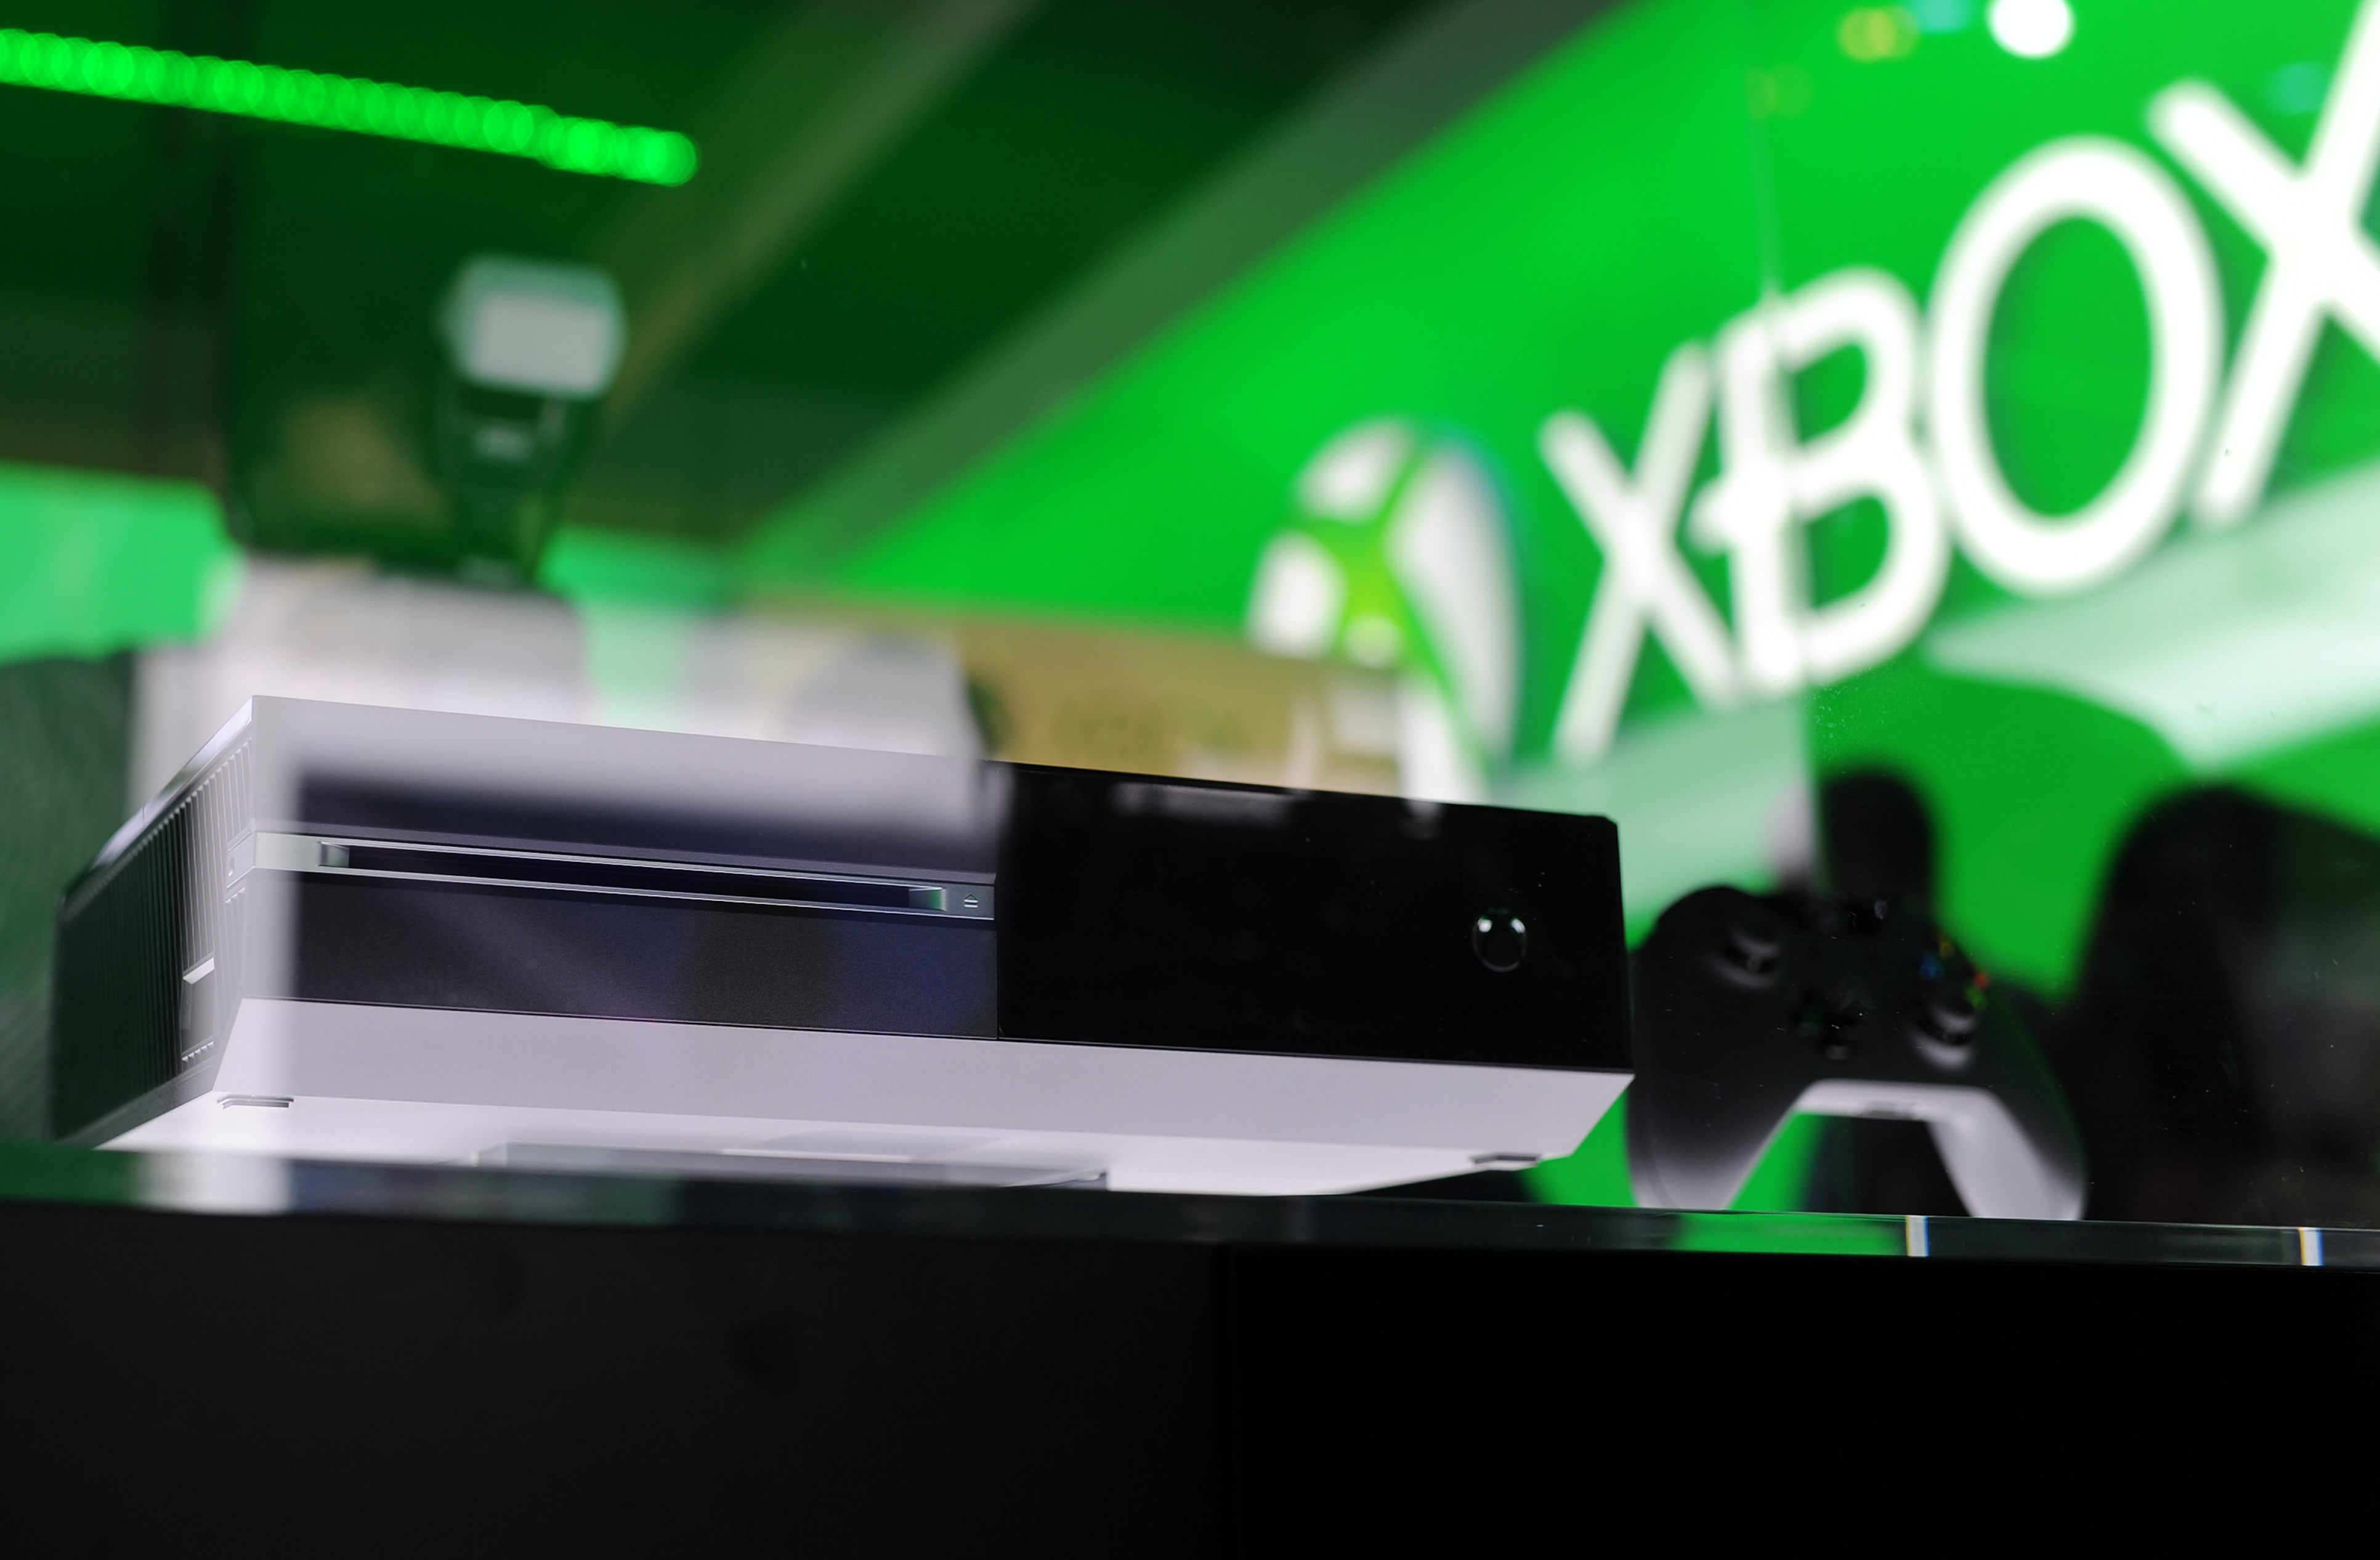 A Dedicated Reddit App Is Launched for Xbox One